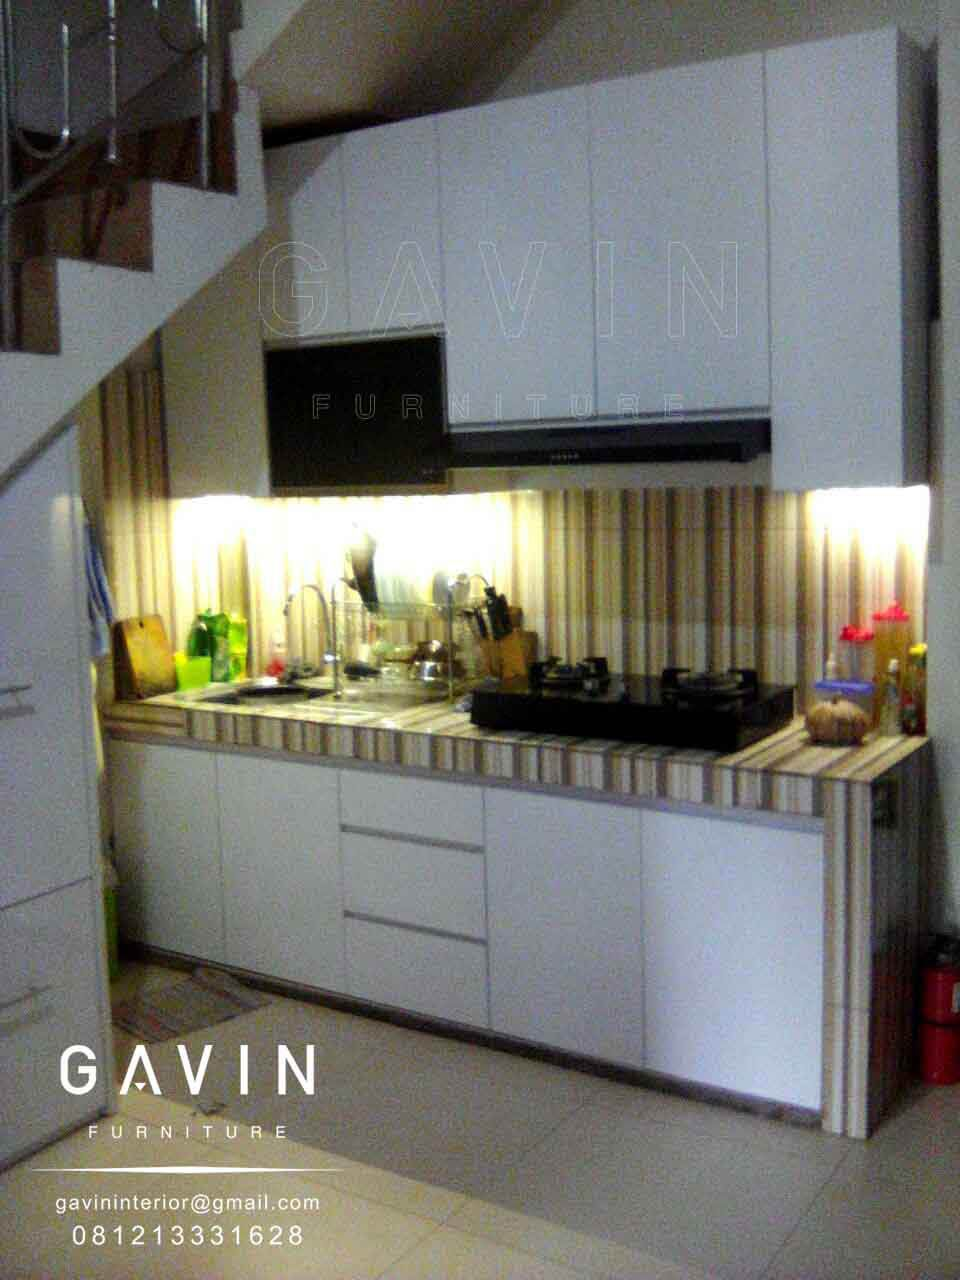 Kitchen Set Furniture Kitchen Set Murah Berkualitas Hanya Di Gavin Furniture Kitchen Set